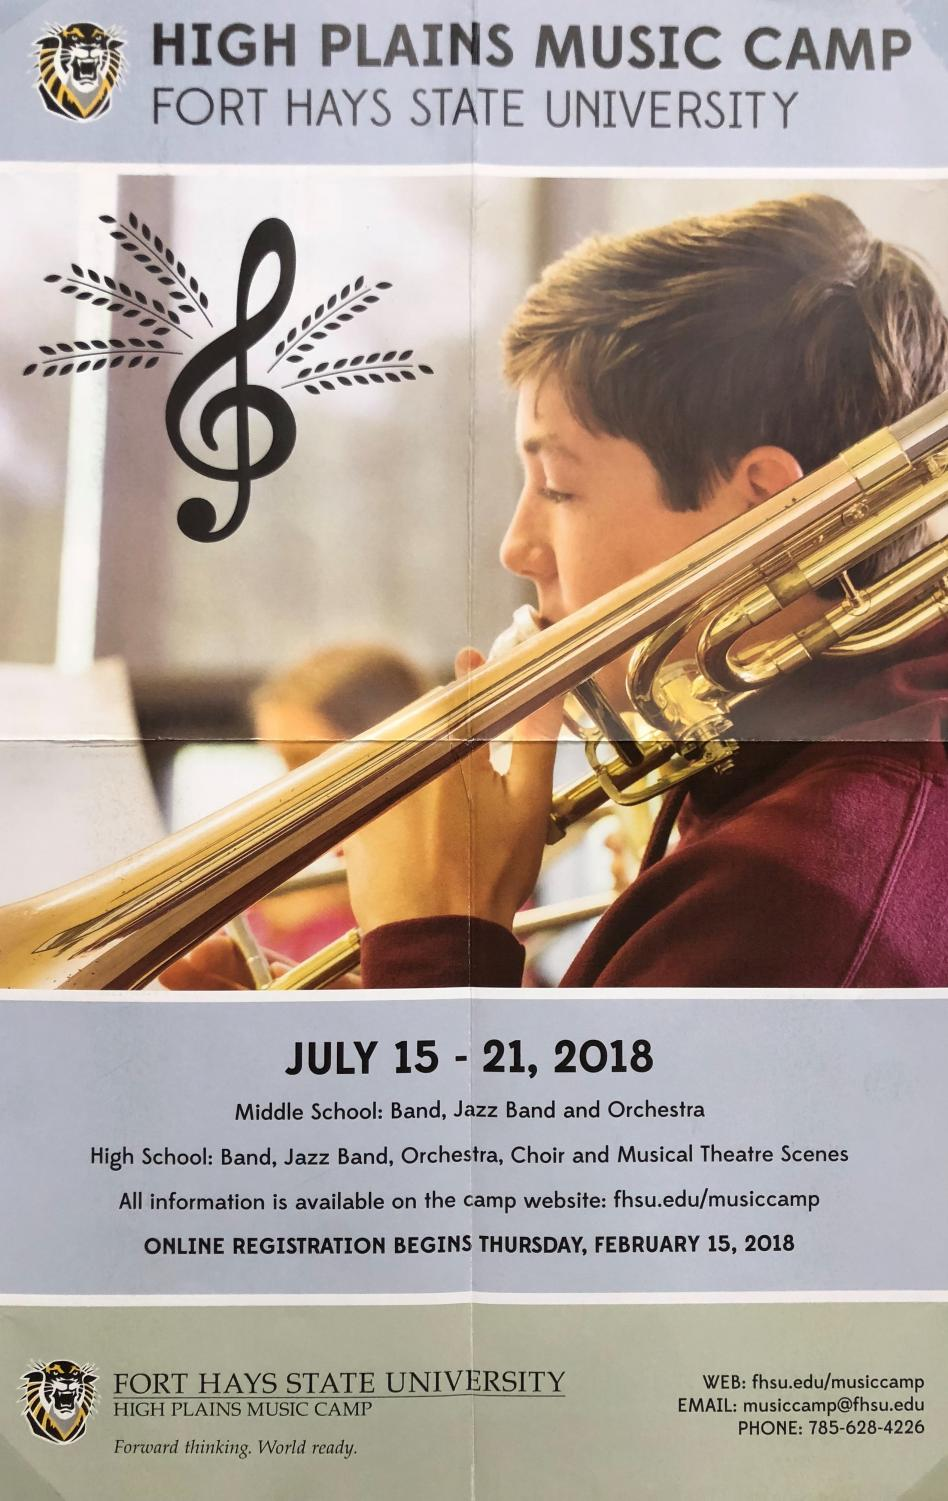 Registration for the High Plains Music Camp will open on Feb. 15. Auditions will be held on Sunday July 9.